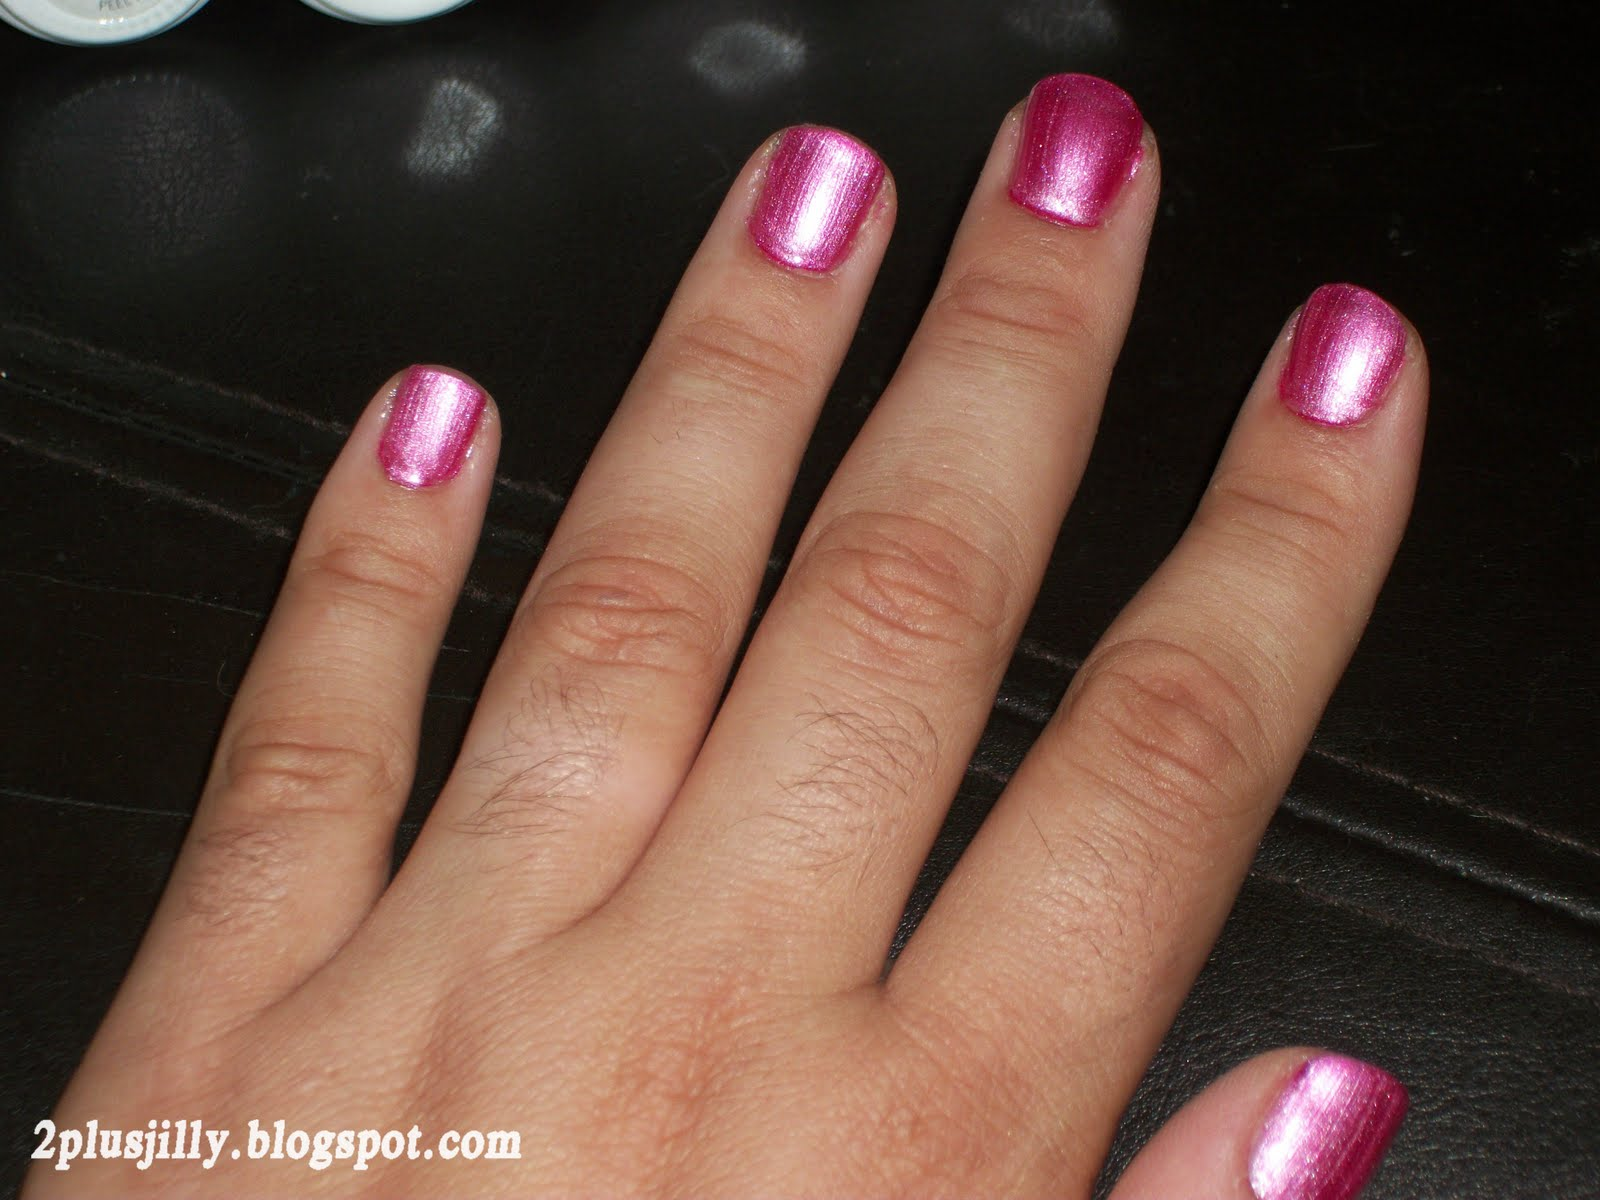 when doing gel nails at home photo - 1